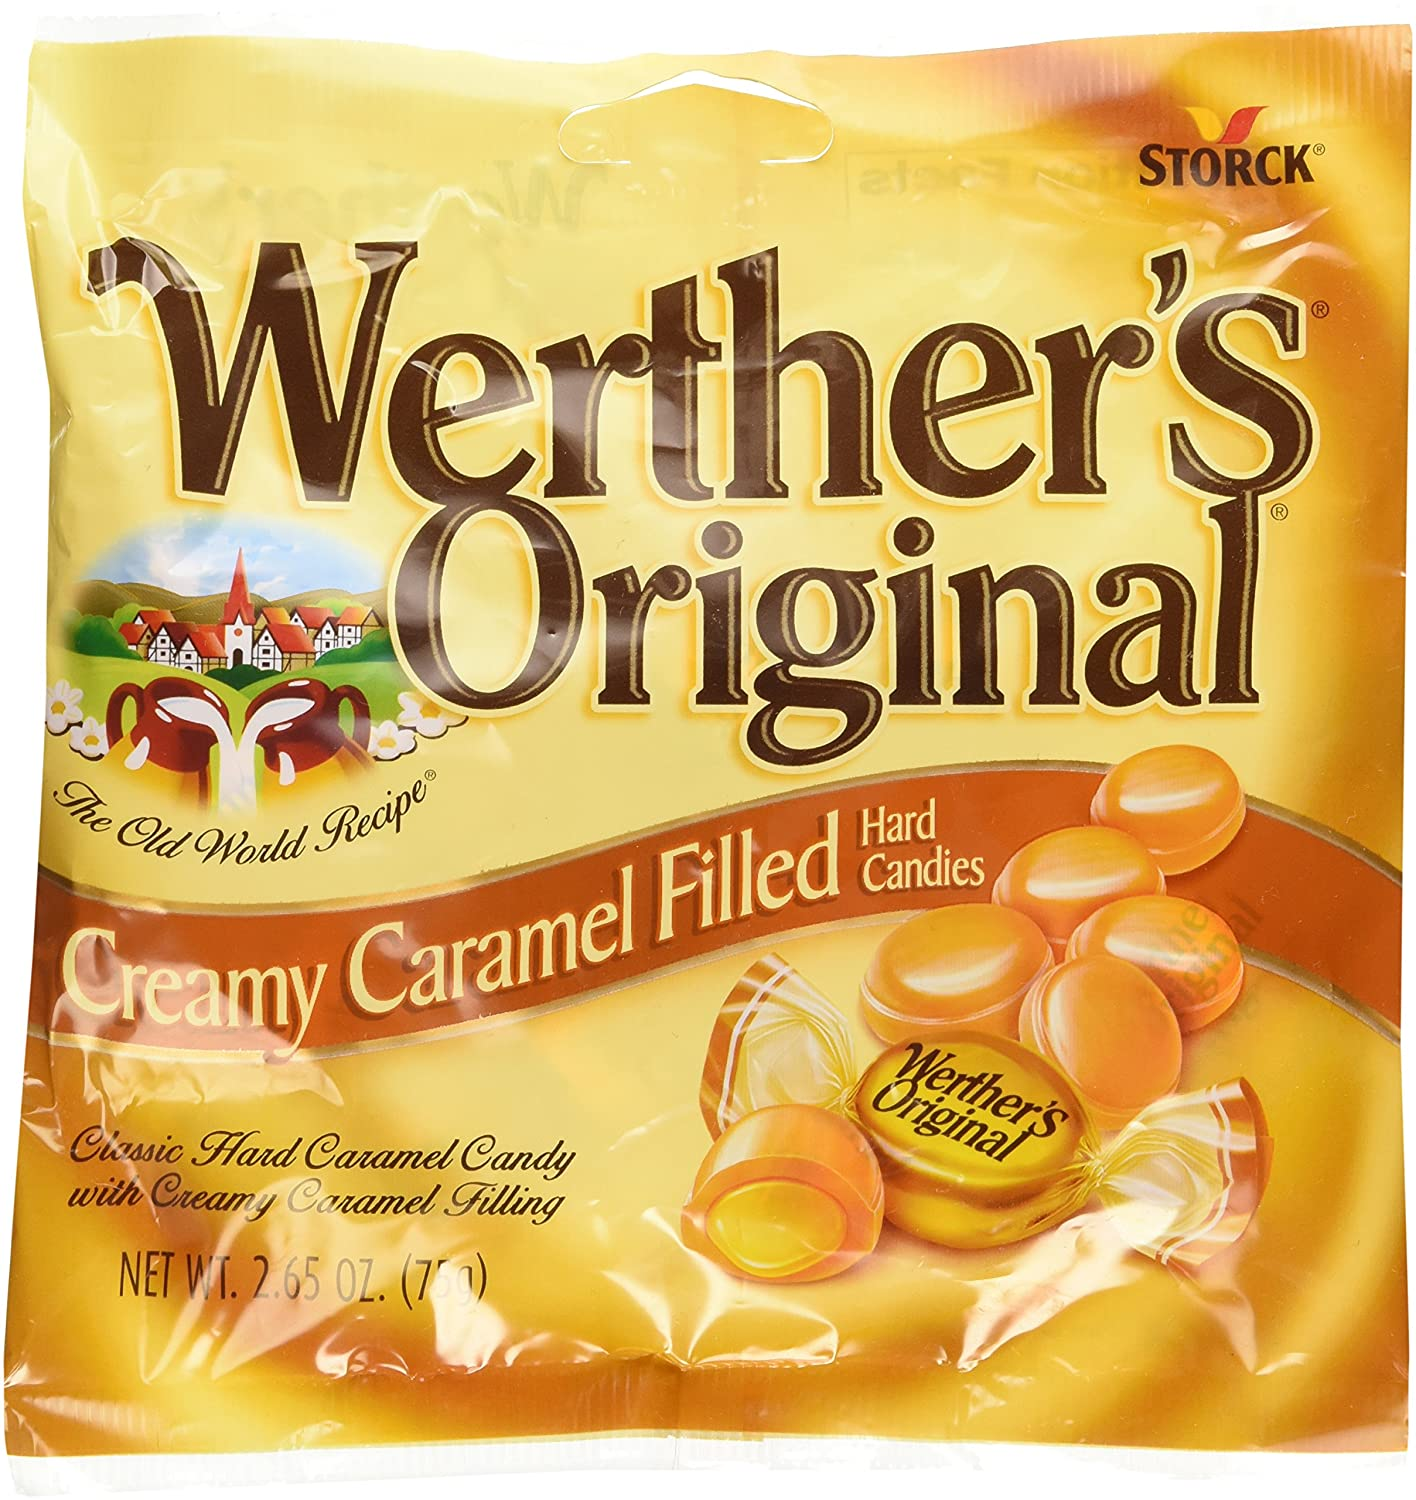 Werther's Original Creamy Caramel Filled Hard Candies (2.65oz) 3 Pack